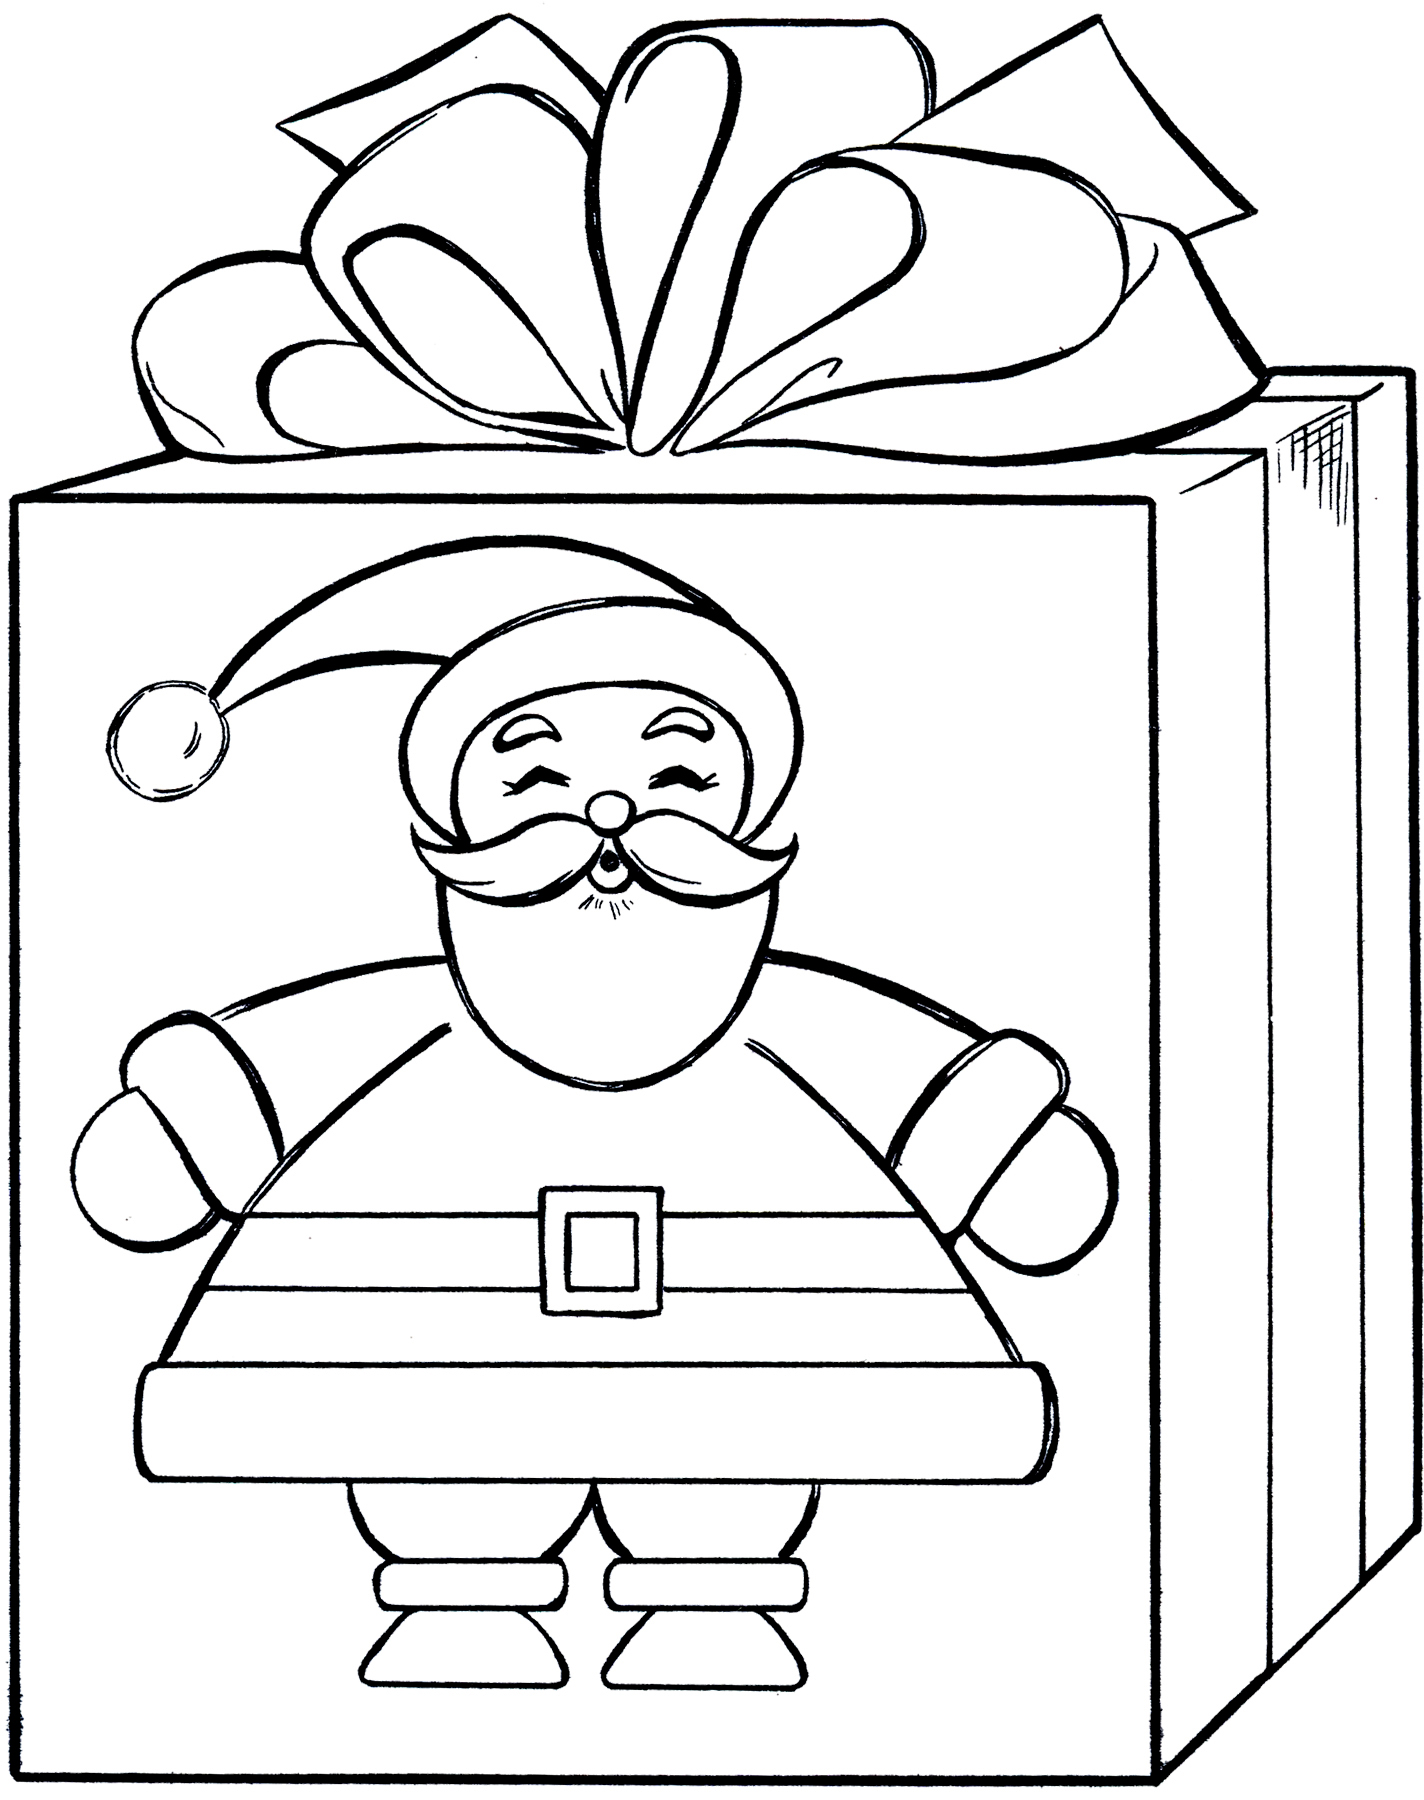 12 Free Printable Christmas Coloring Pages! - The Graphics ...